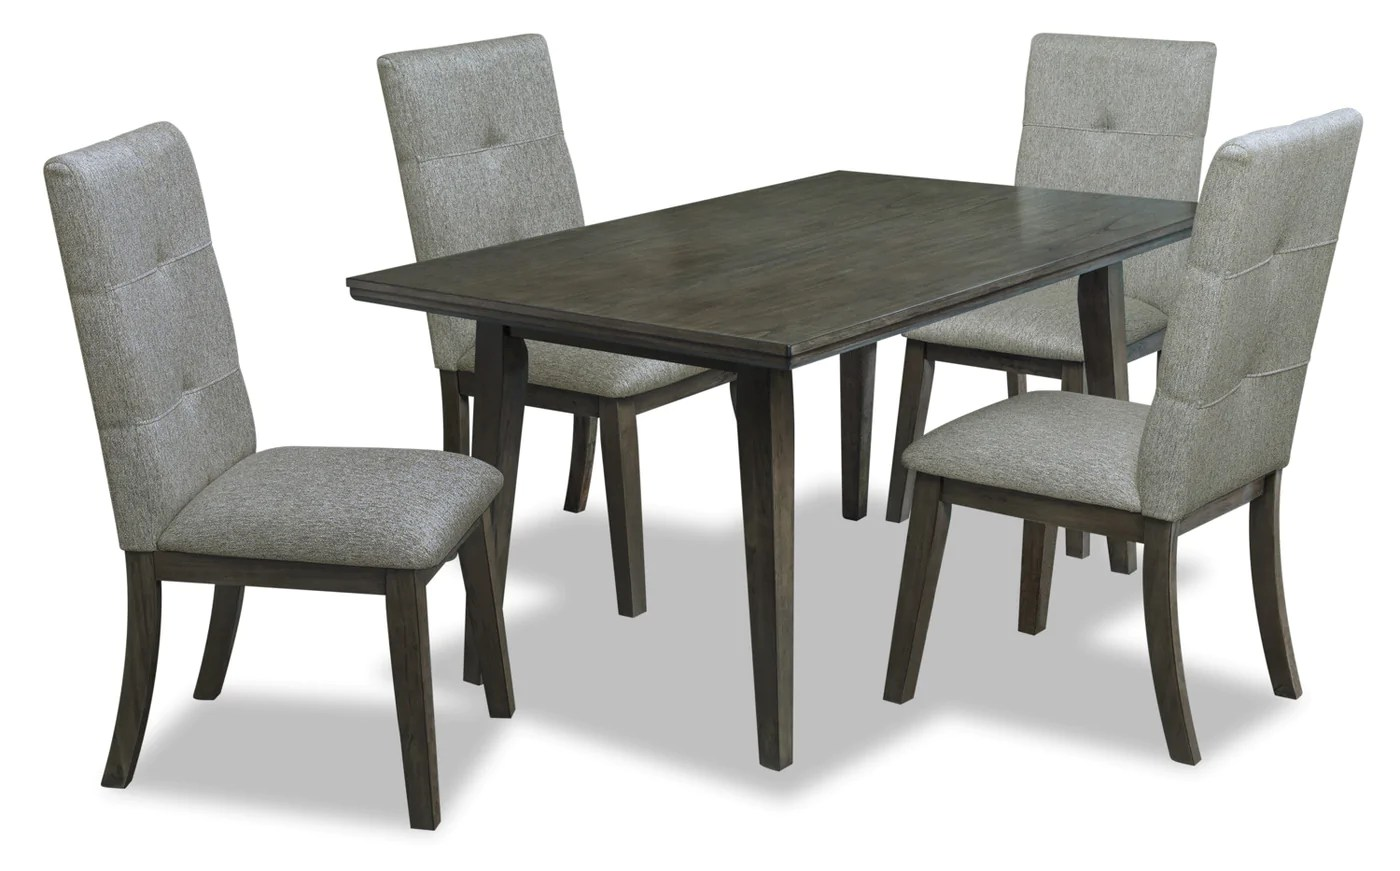 Chelsea 5 Piece Rectangular Dining Package Grey Brown The Brick